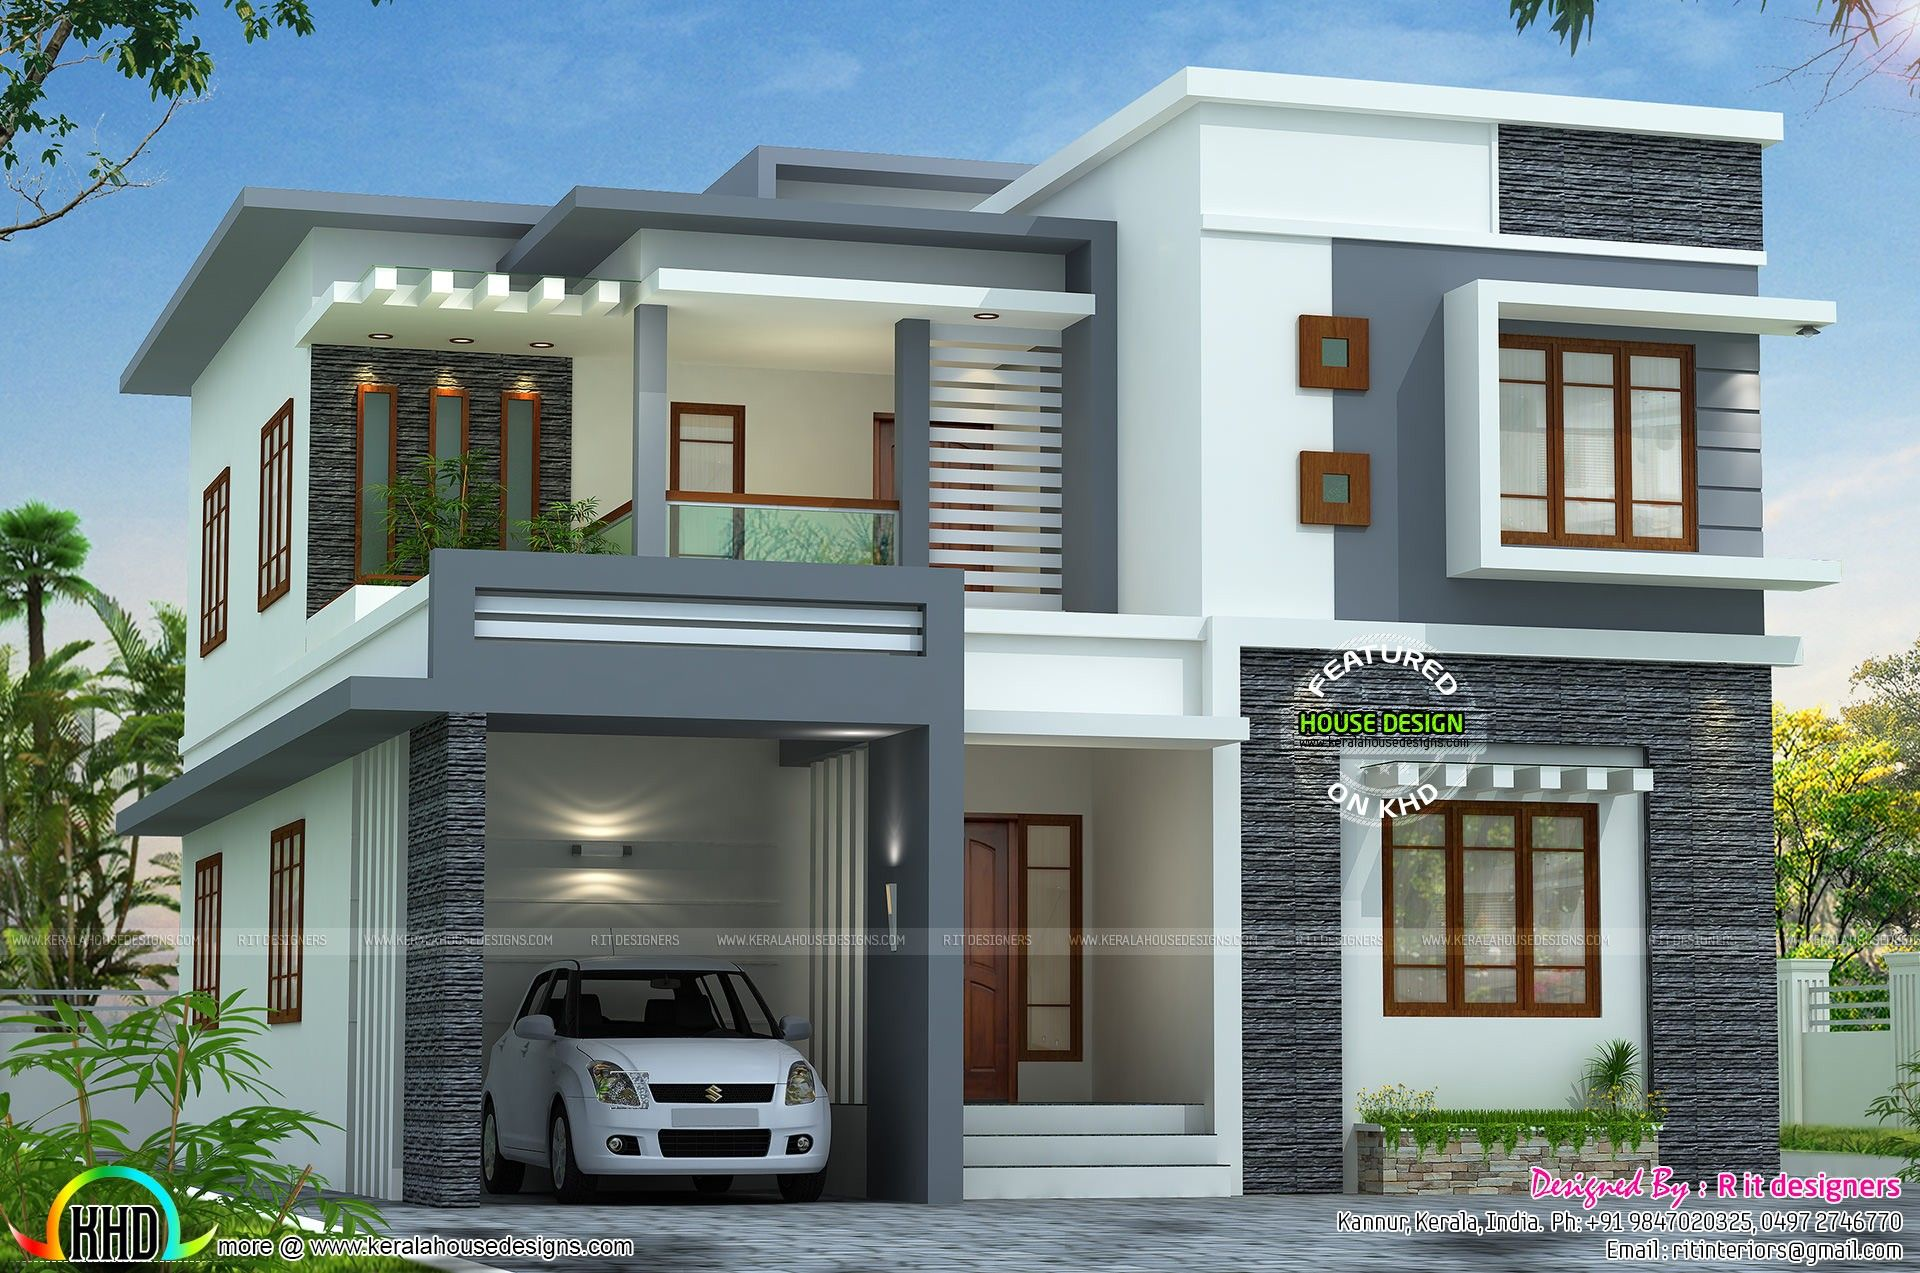 Double Storey House Exterior Design Beautiful Modern Luxury House With Cellar Floor Kerala House Design Two Story House Design 2 Storey House Design